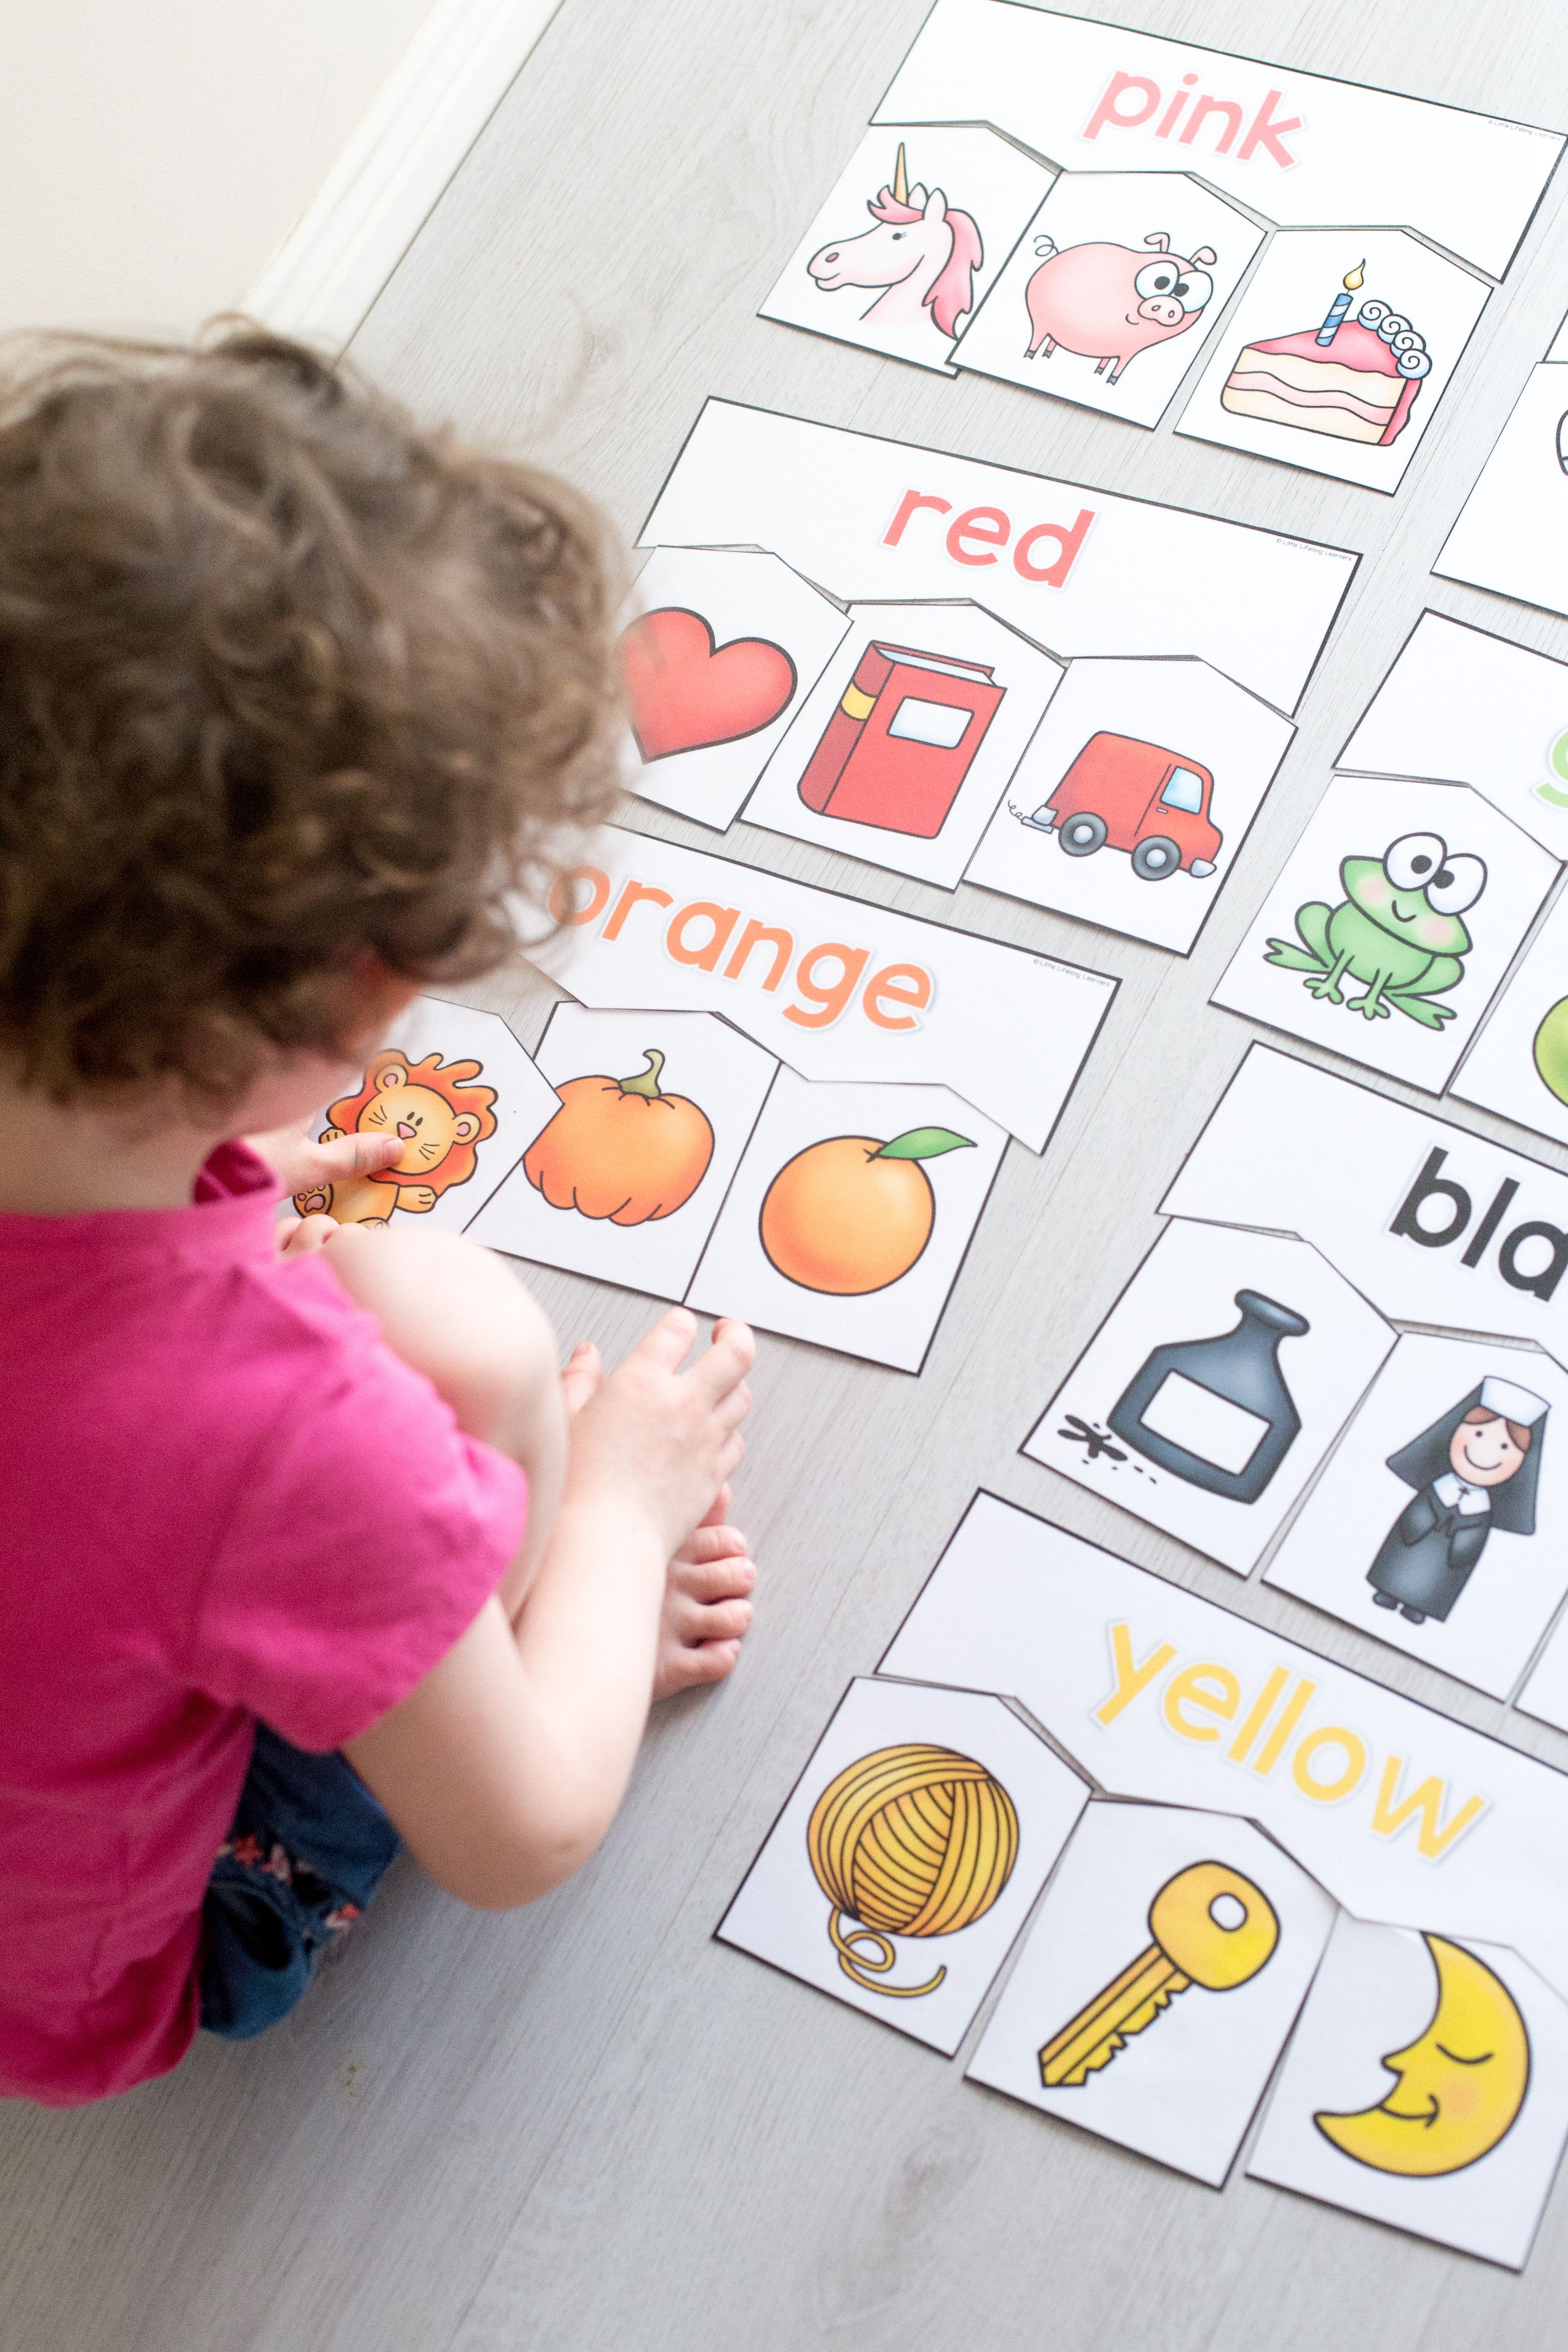 Colour Puzzles For Toddlers And Preschoolers | Kids | Puzzles For - Printable Puzzles For 3 Year Olds